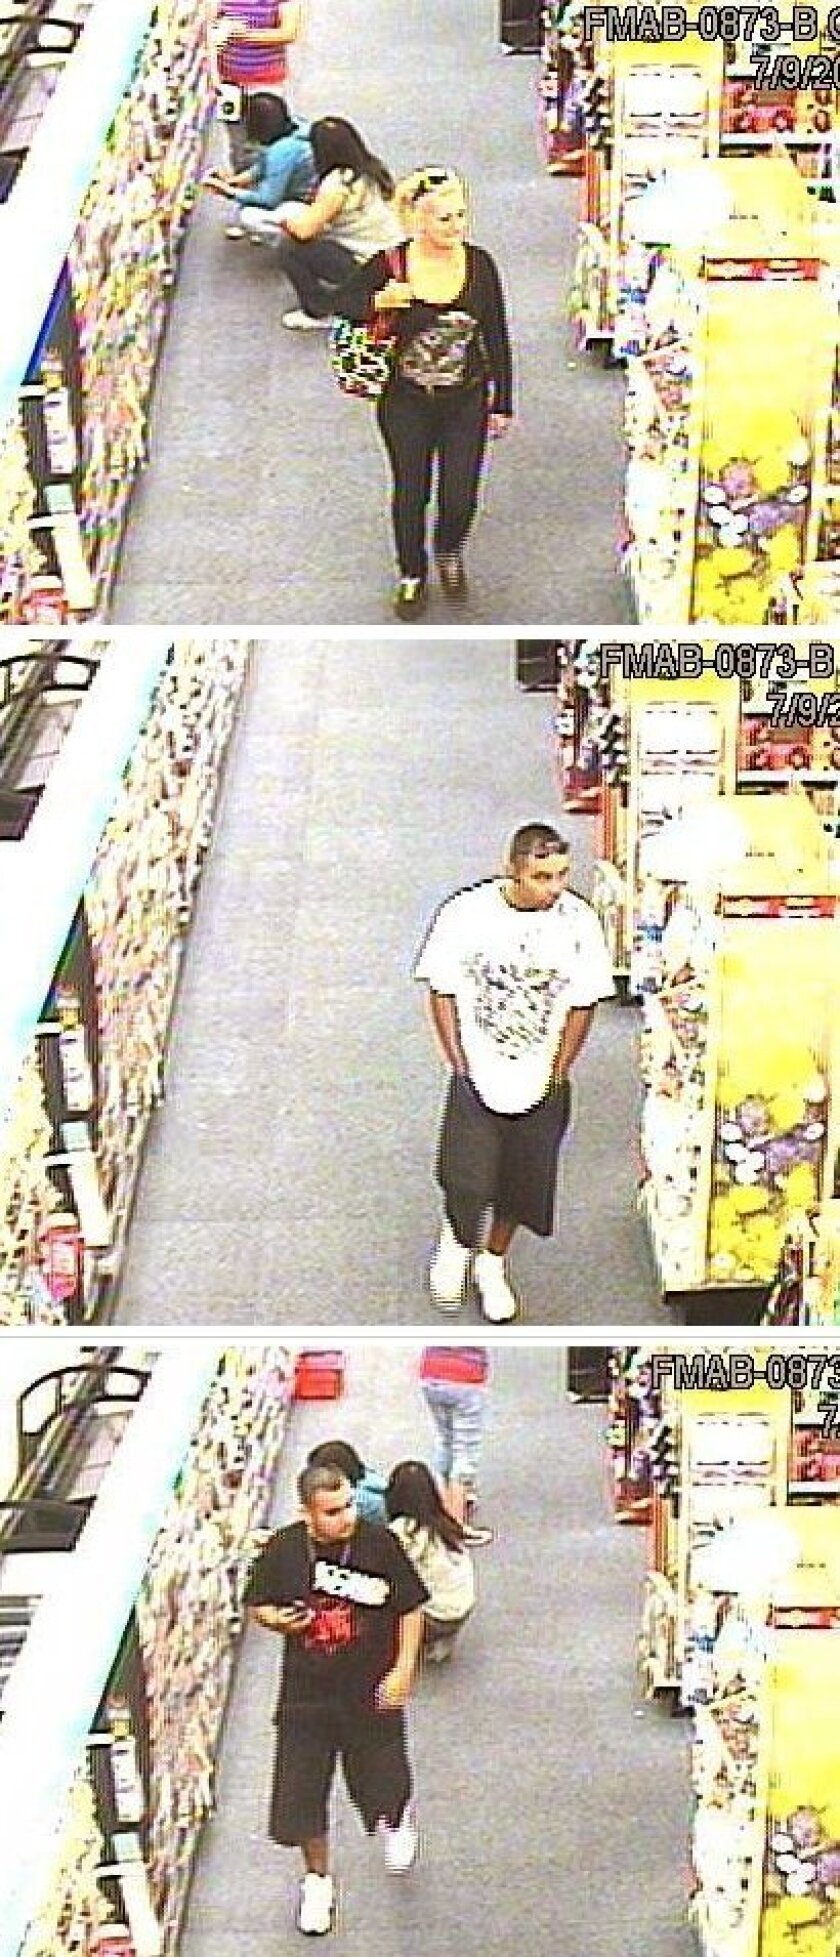 Store photos show suspects  wanted in a series of burglaries at pharmacies.